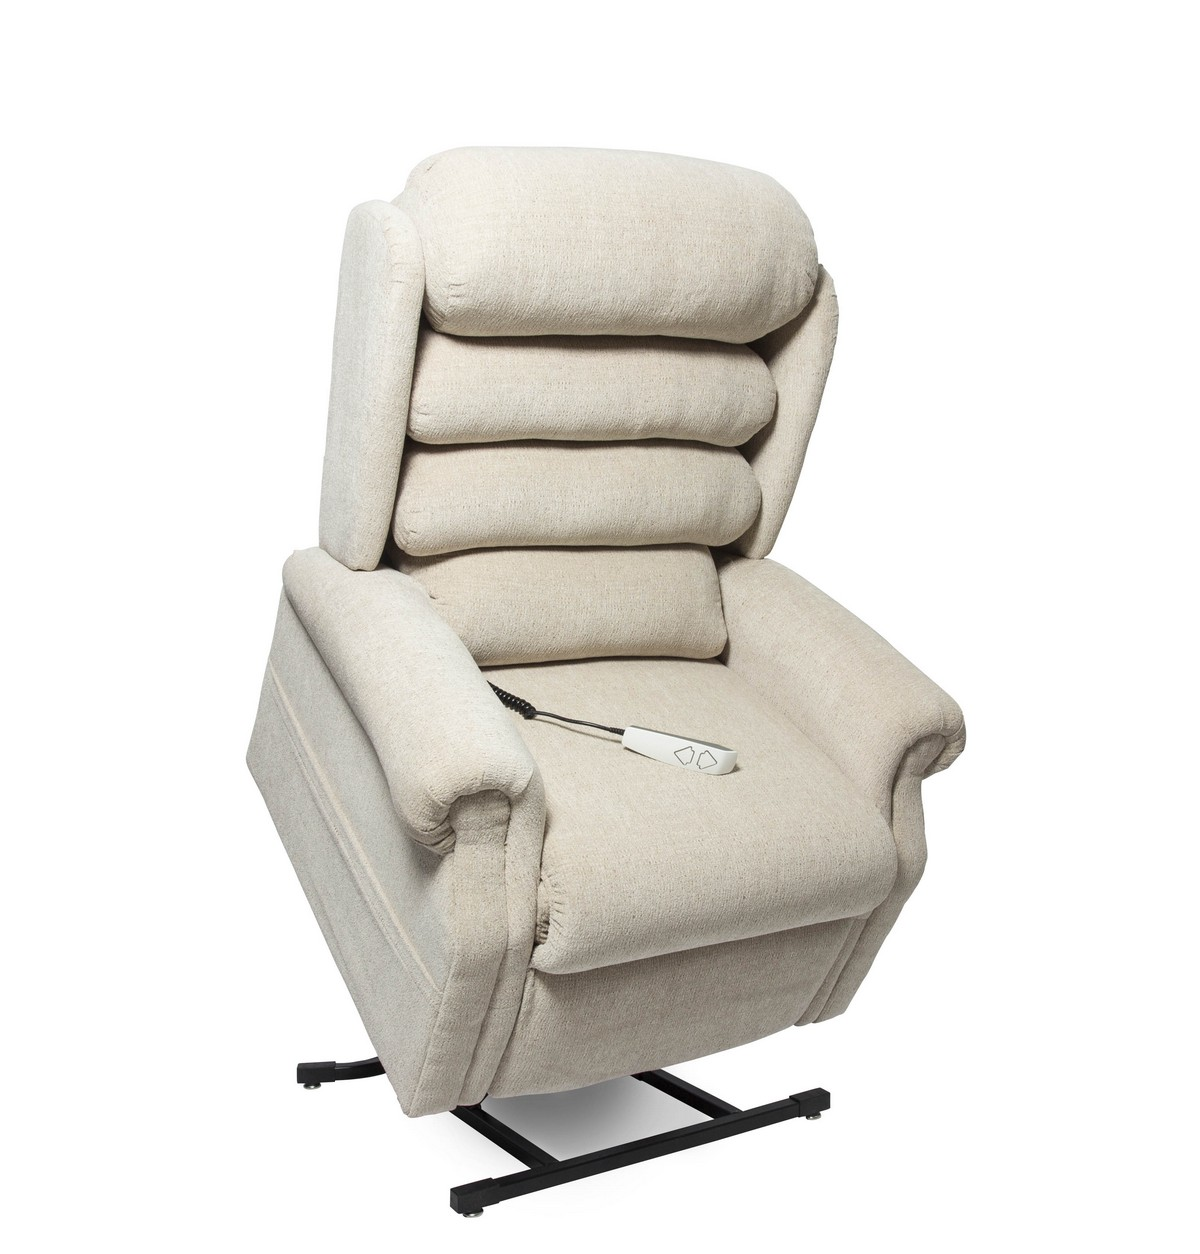 mega motion lift chairs reviews events nationwide chair covers nm1950 stellar 3 position power chaise